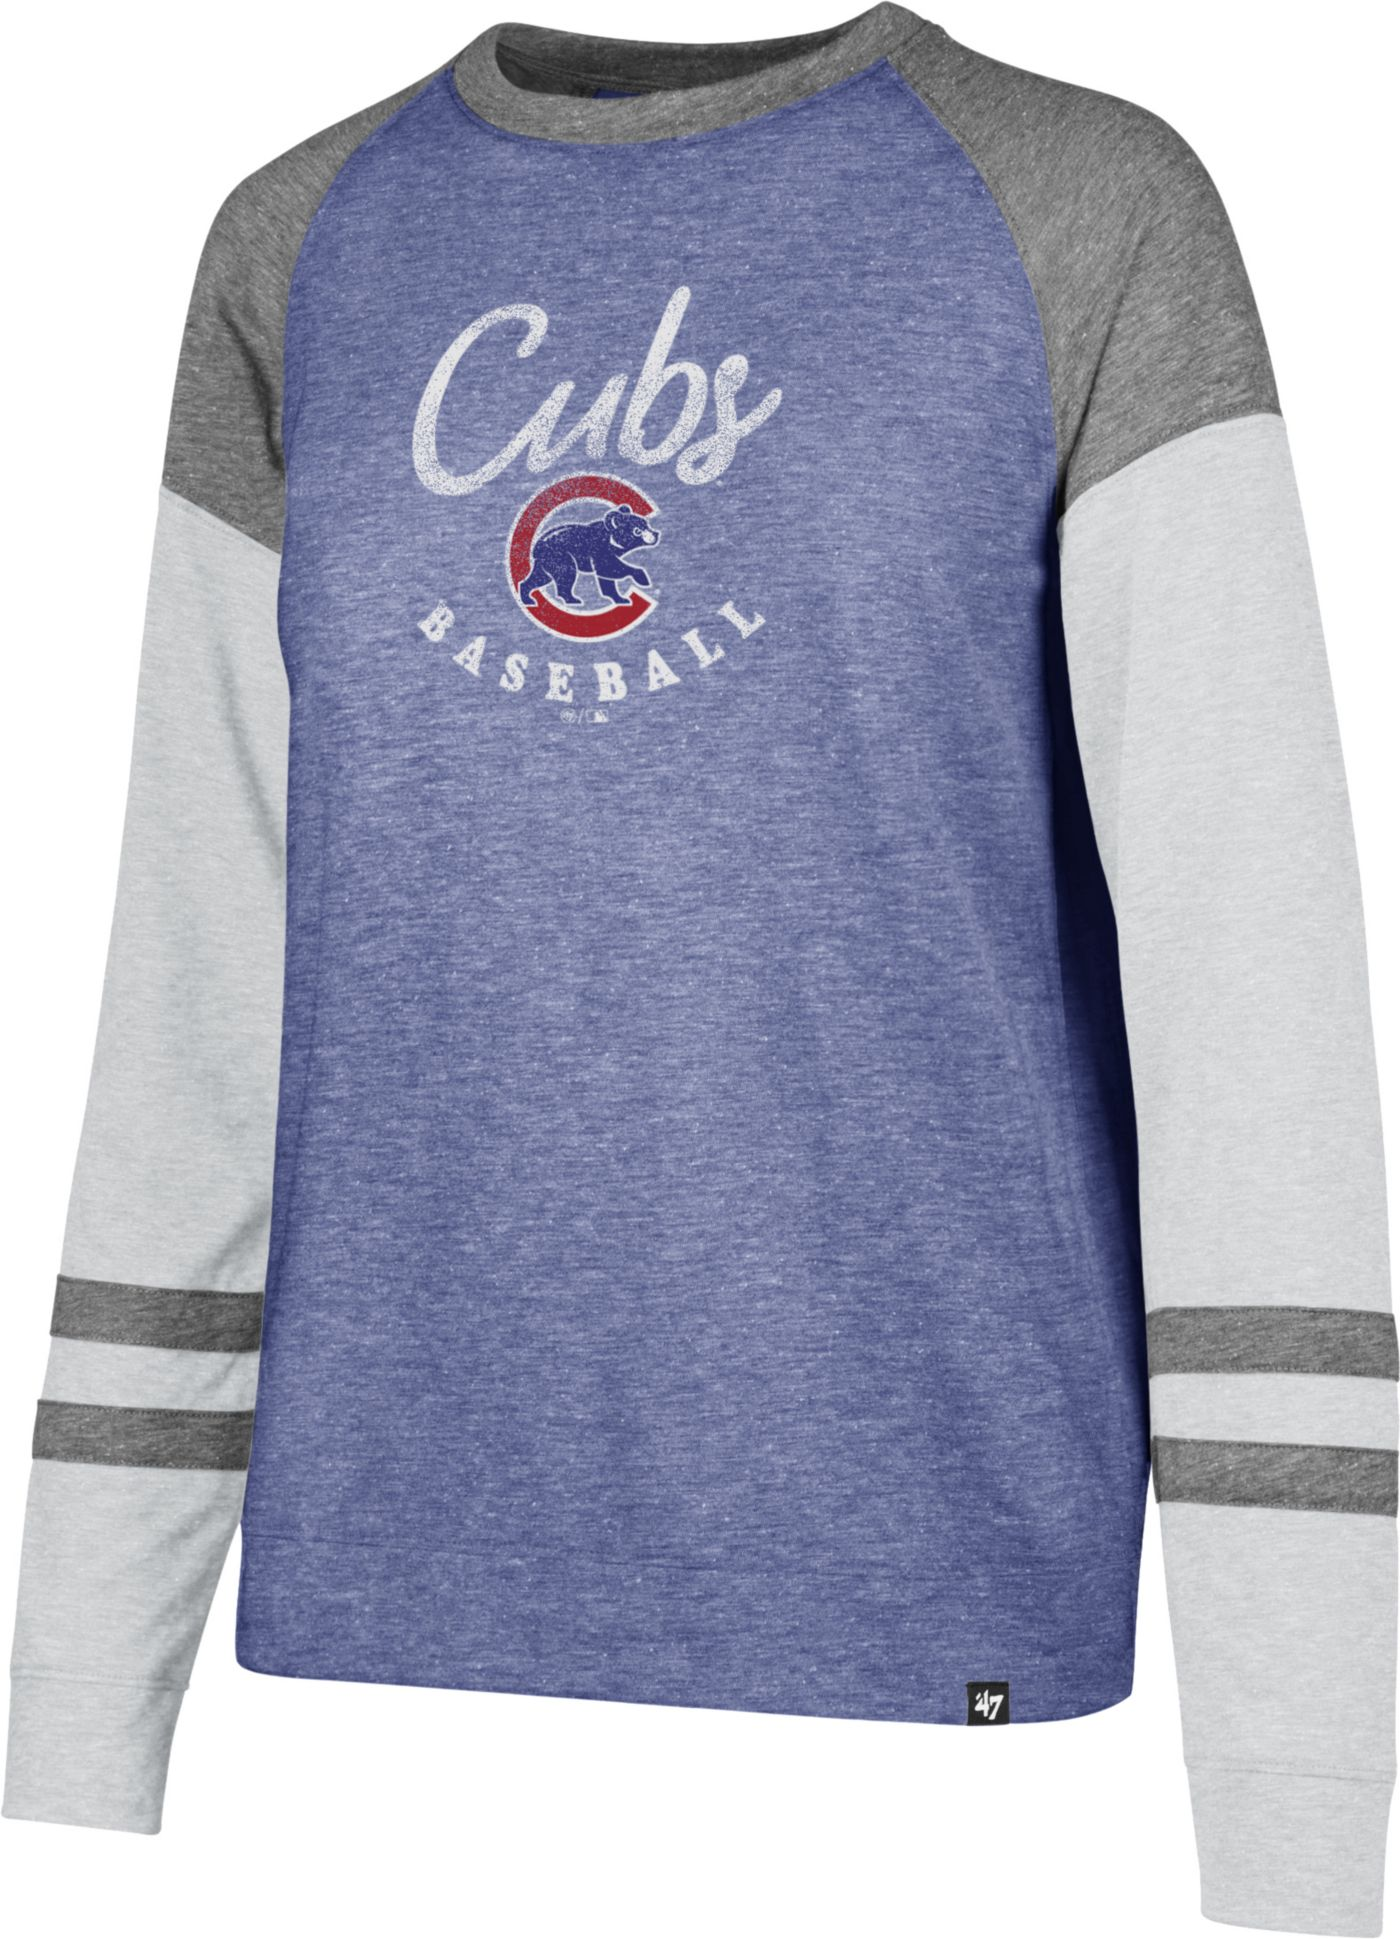 '47 Women's Chicago Cubs Match Long Sleeve Shirt